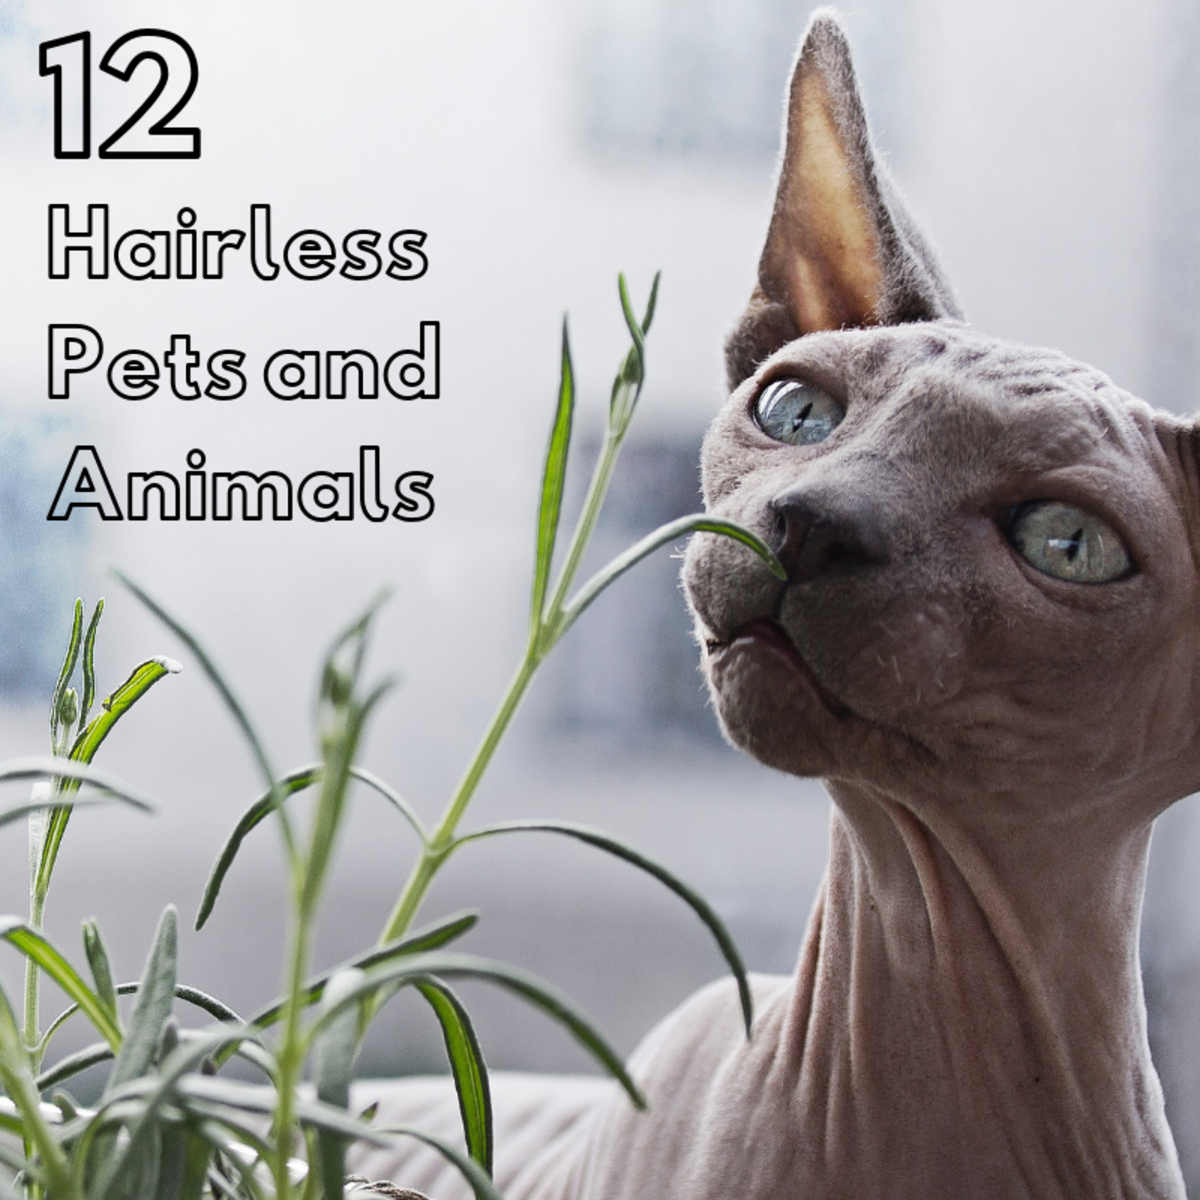 Hairless animals are becoming more and more popular in the pet trade, but they have also been used in research and for food.